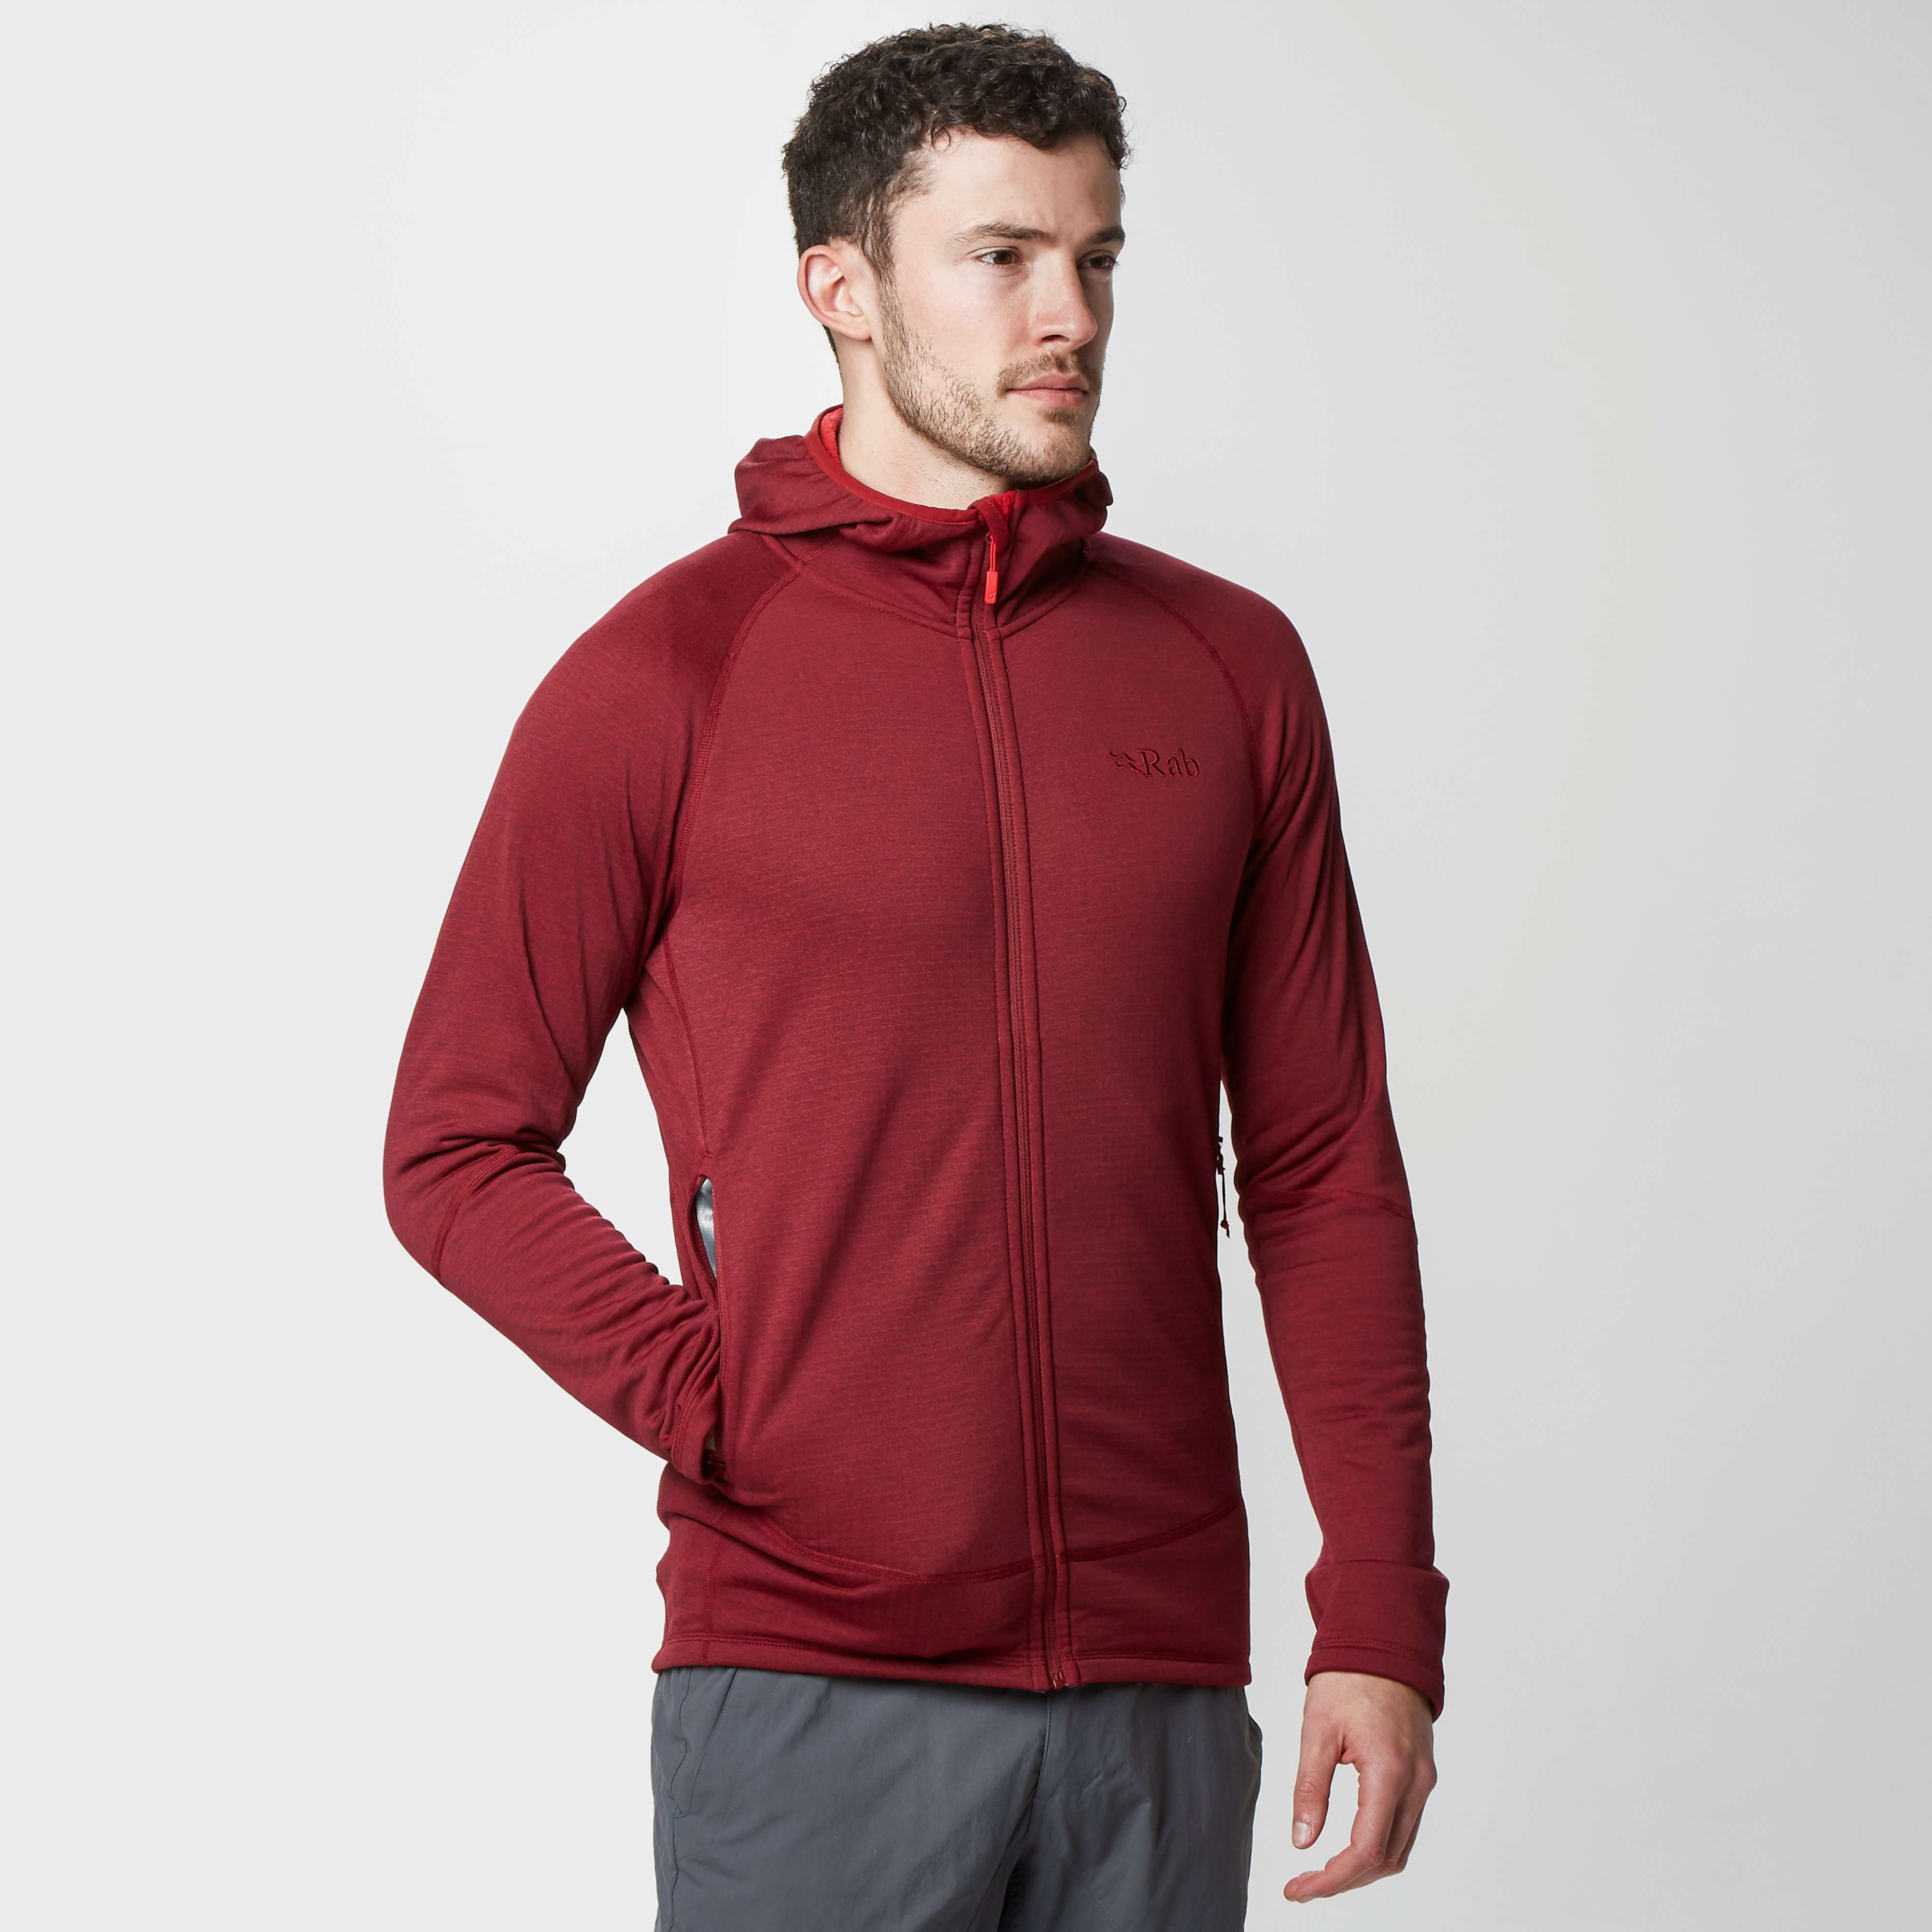 RAB Men's Nucleus Pull-On Red